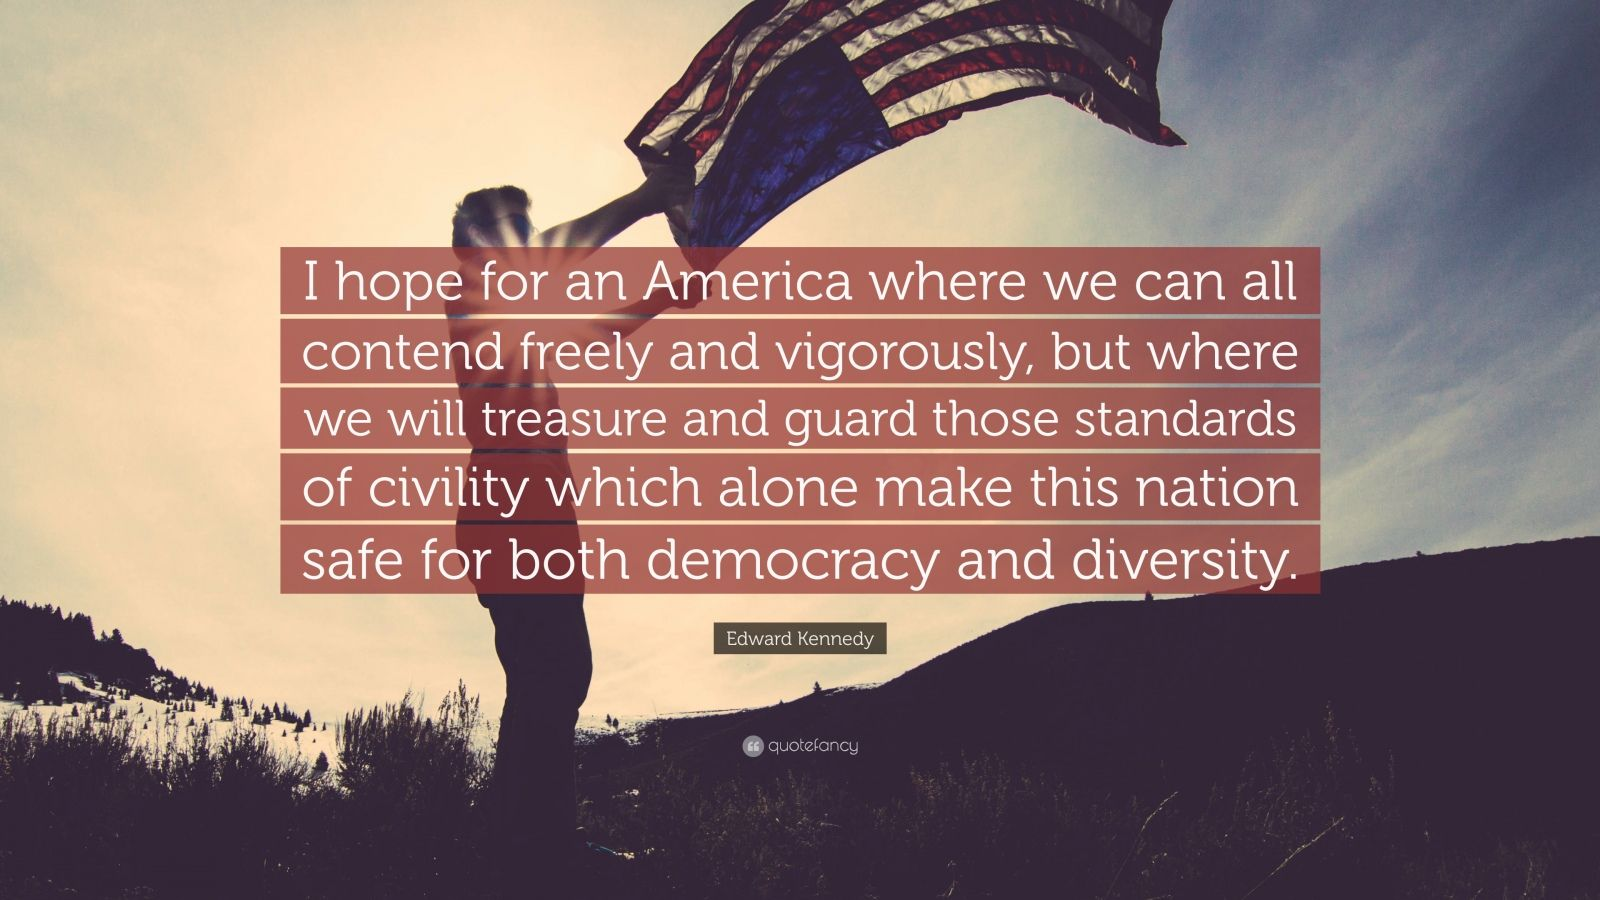 """Edward Kennedy Quote: """"I hope for an America where we can all contend freely and vigorously, but where we will treasure and guard those standards of civility which alone make this nation safe for both democracy and diversity."""""""